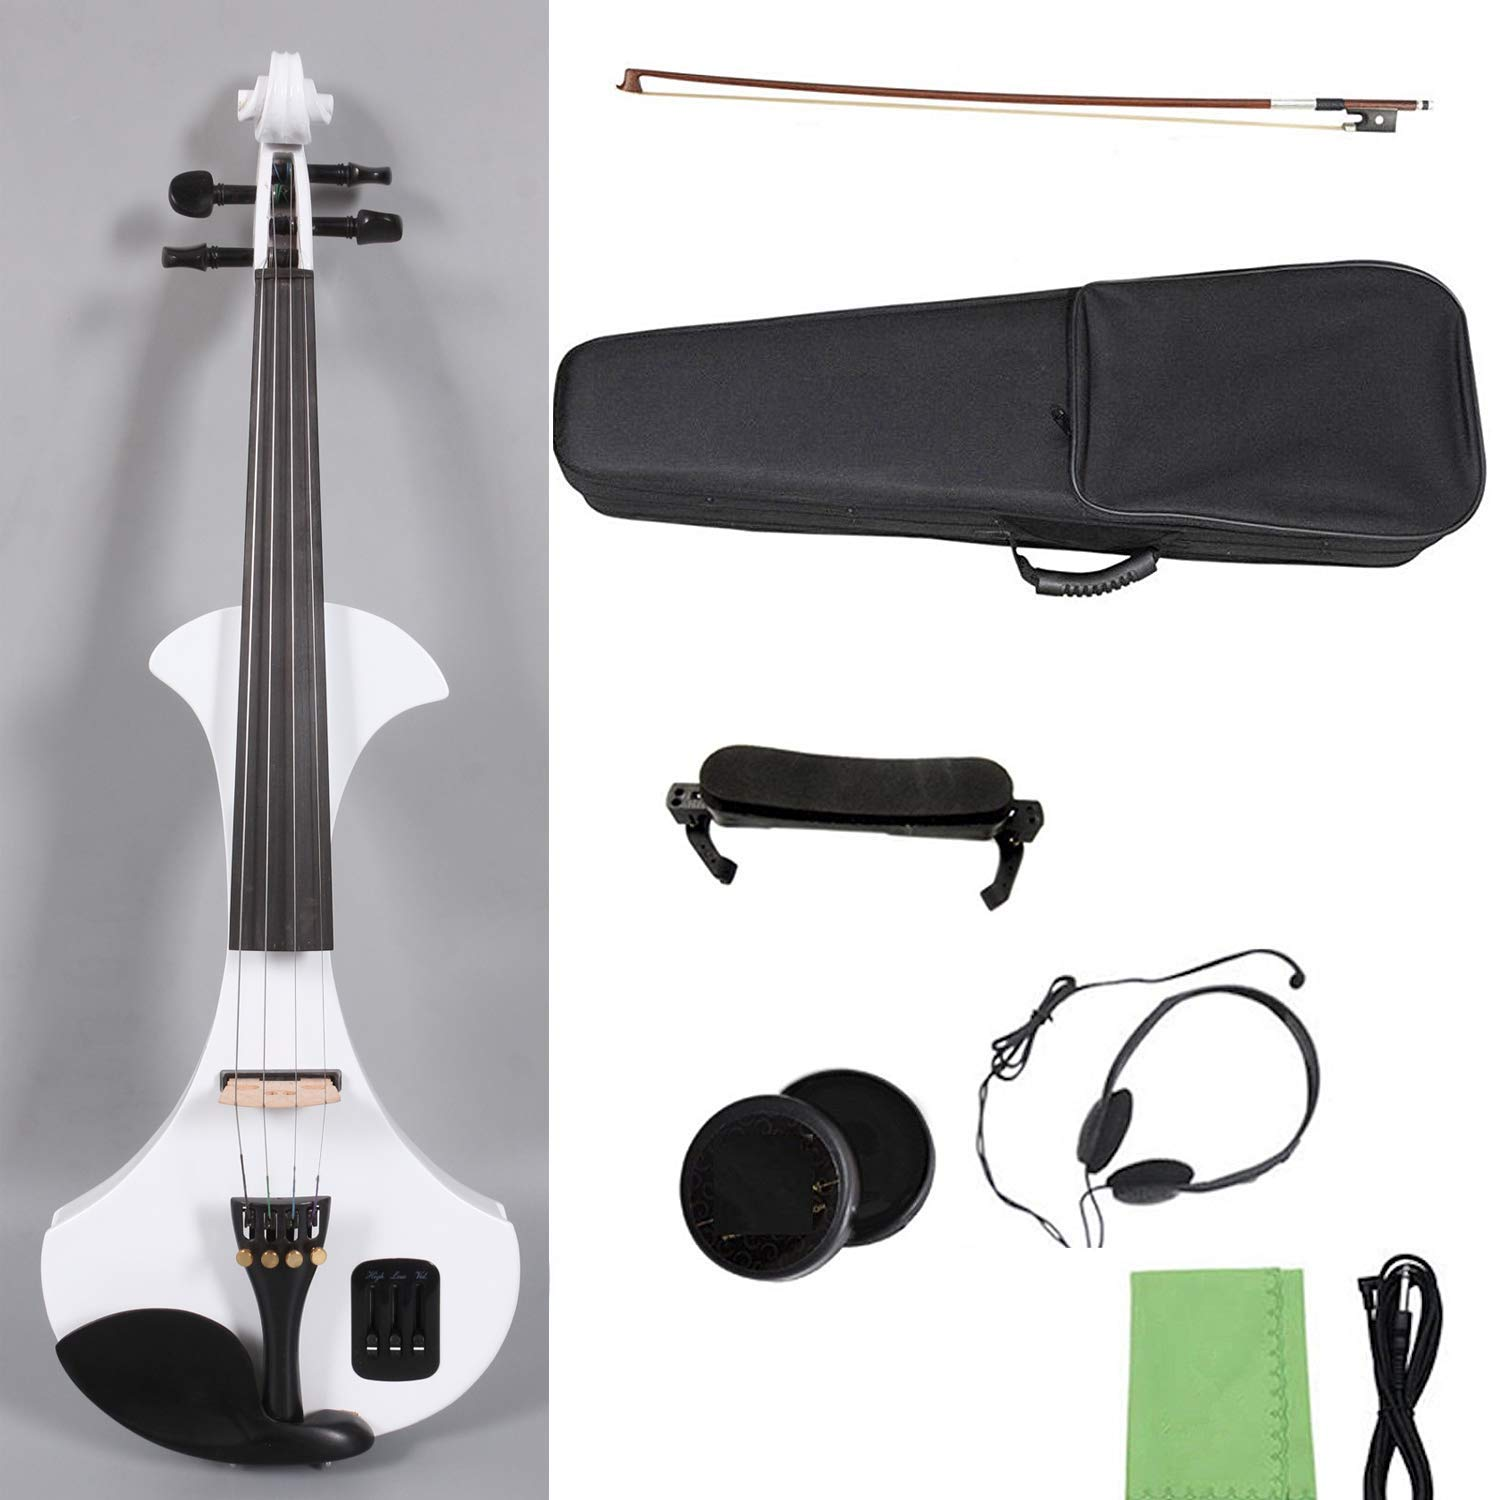 Yinfente 4/4 Electric Violin Professional Violin Big Small Jack Support Mp3 Background by yinfente